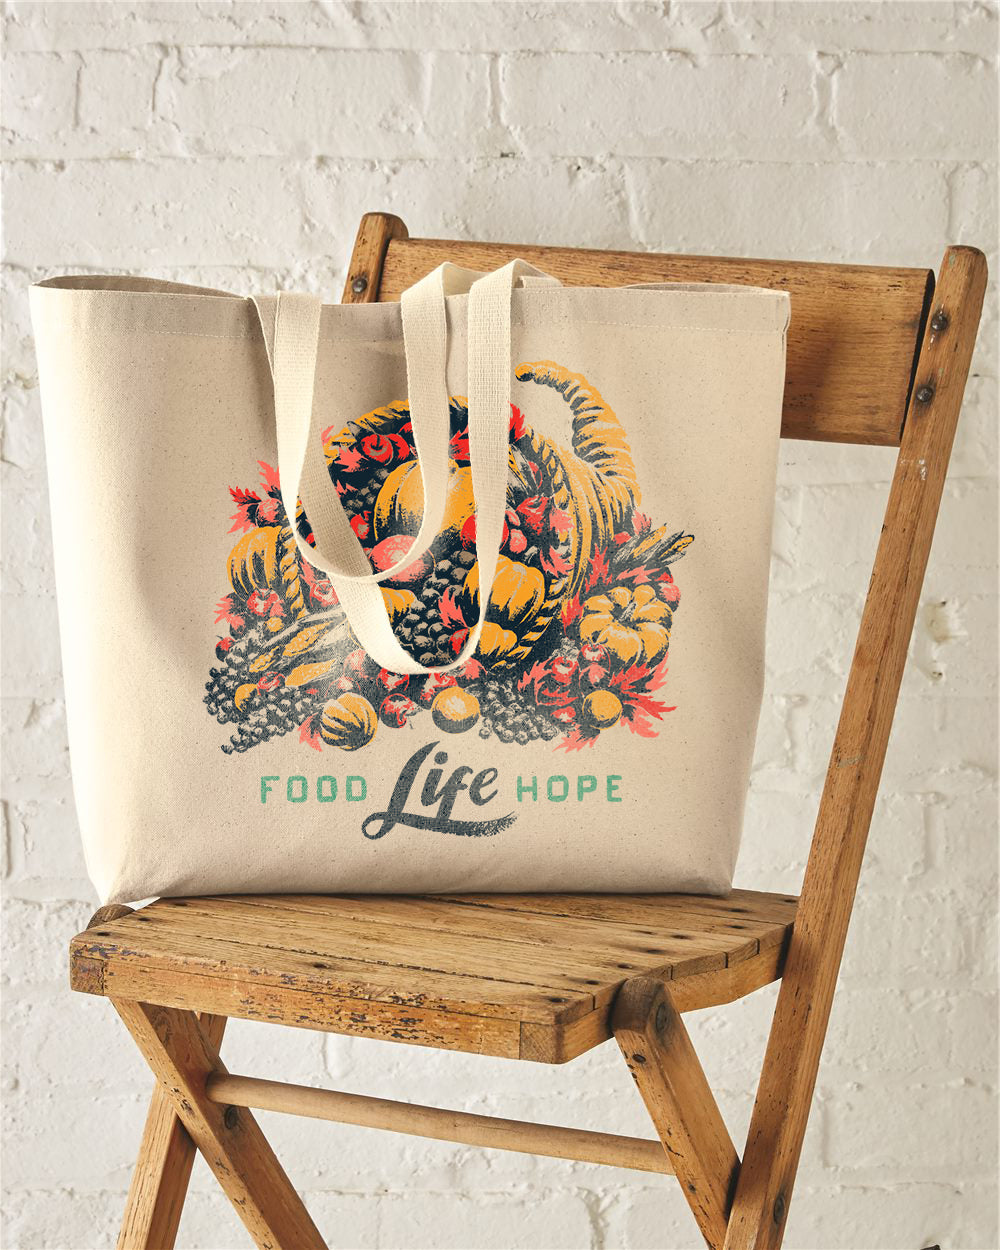 Deliver Cornucopia Premium Cotton Canvas Jumbo Tote